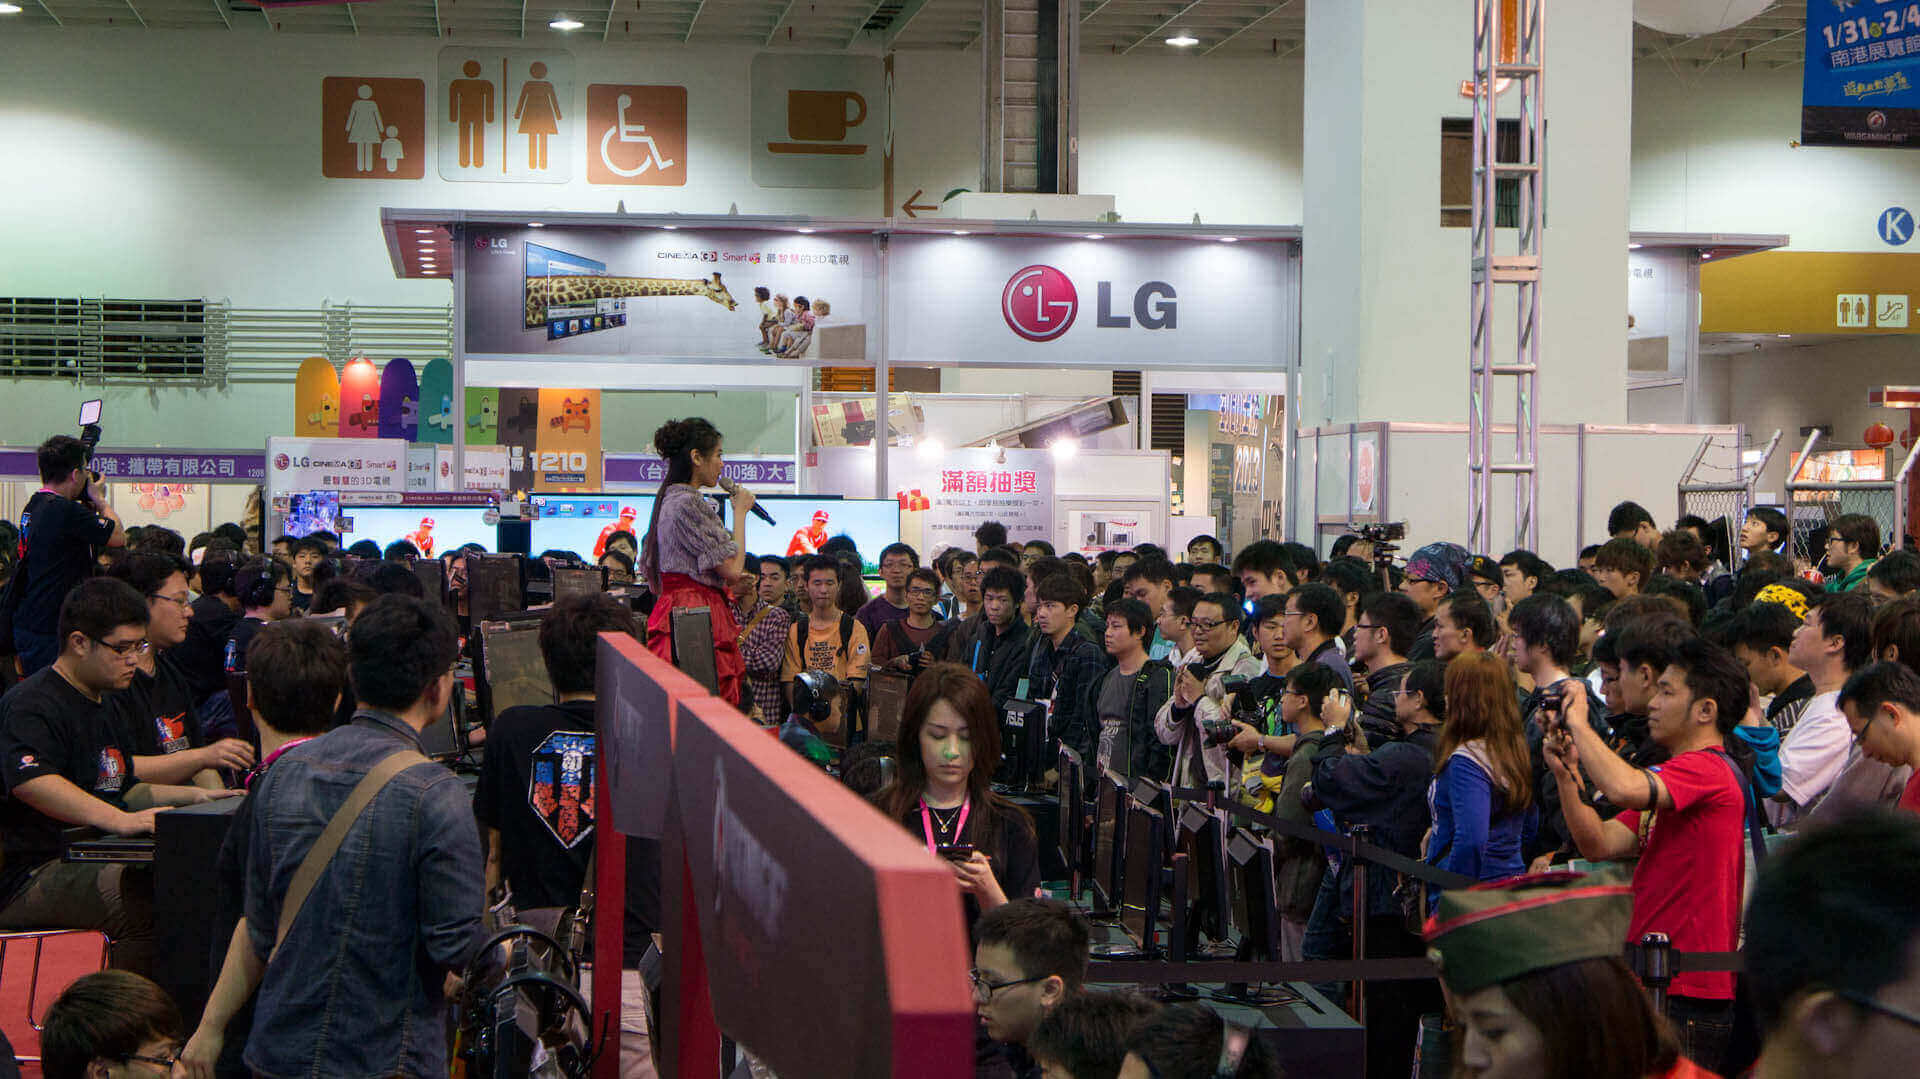 World of Tanks @ Taipei Game Show 2013: Day 4 | Onground Events